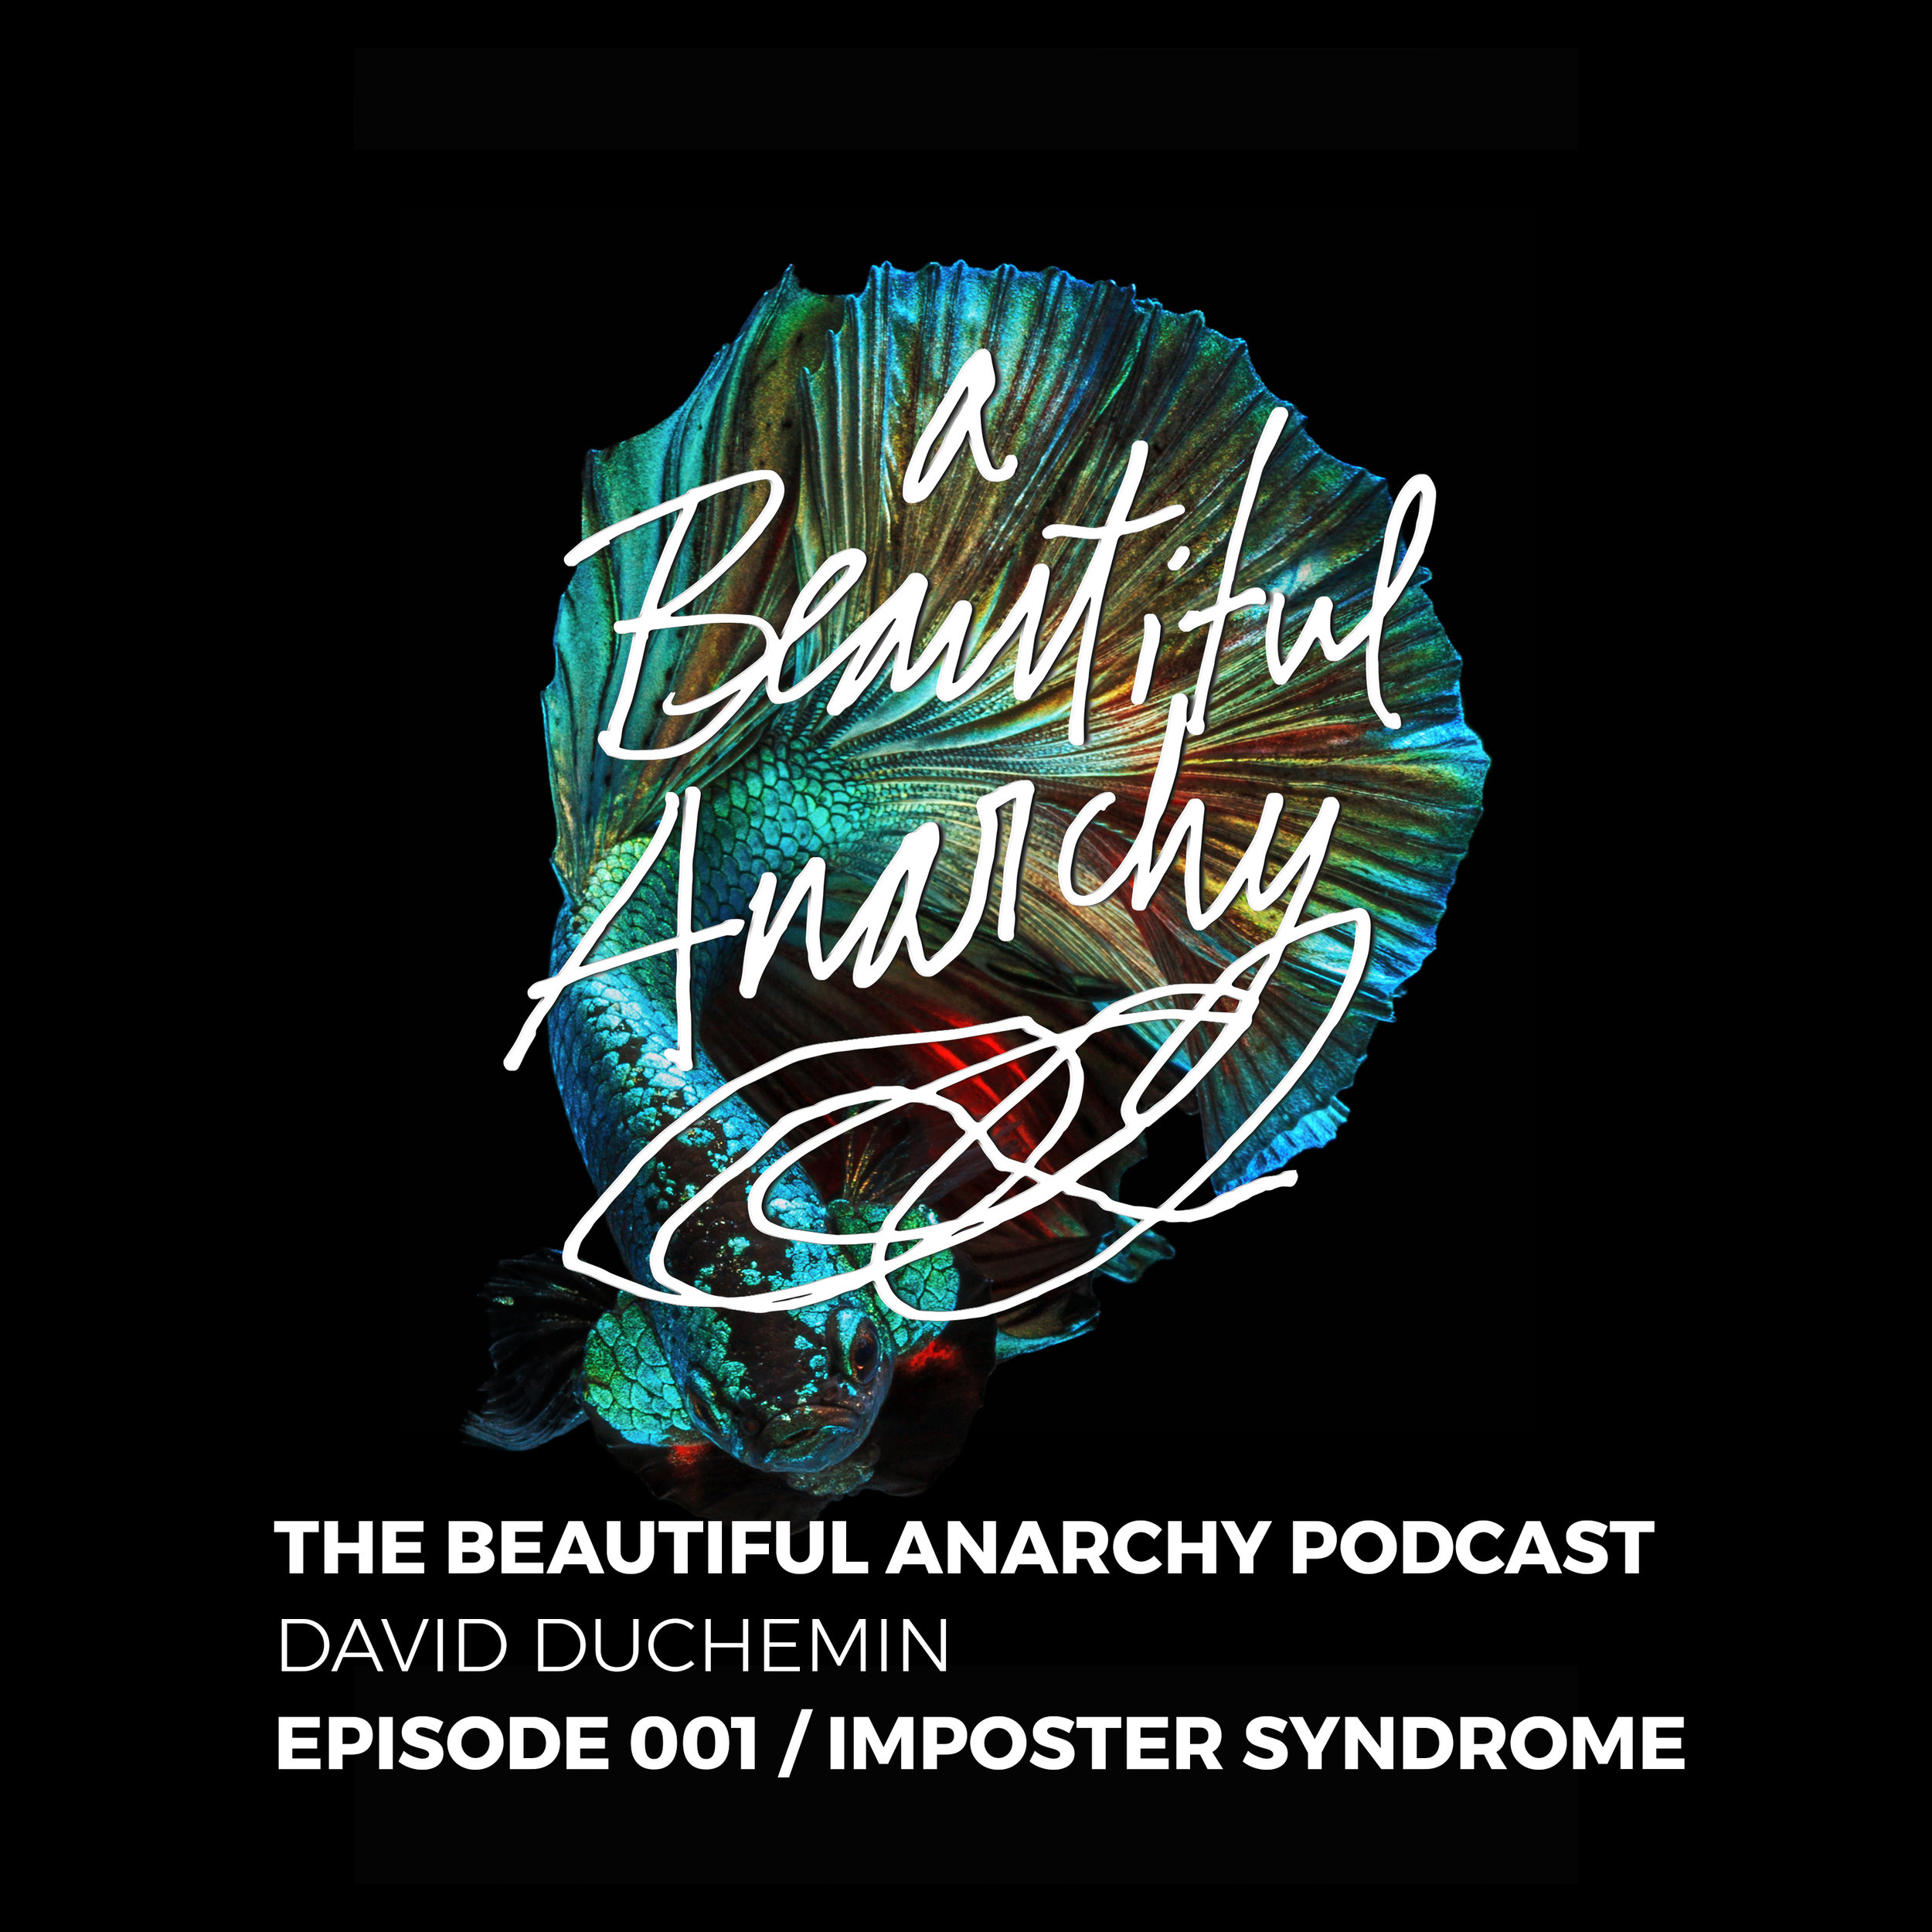 Episode 001: Imposter Syndrome - Every creative person I know feels like they're faking it at times. It can be crippling. But when you consider that everything we create is something new, in uncharted territory, it makes sense that we feel like we're making it up as we go. Where we get into trouble is when we compare our process with others. Let's talk about it.